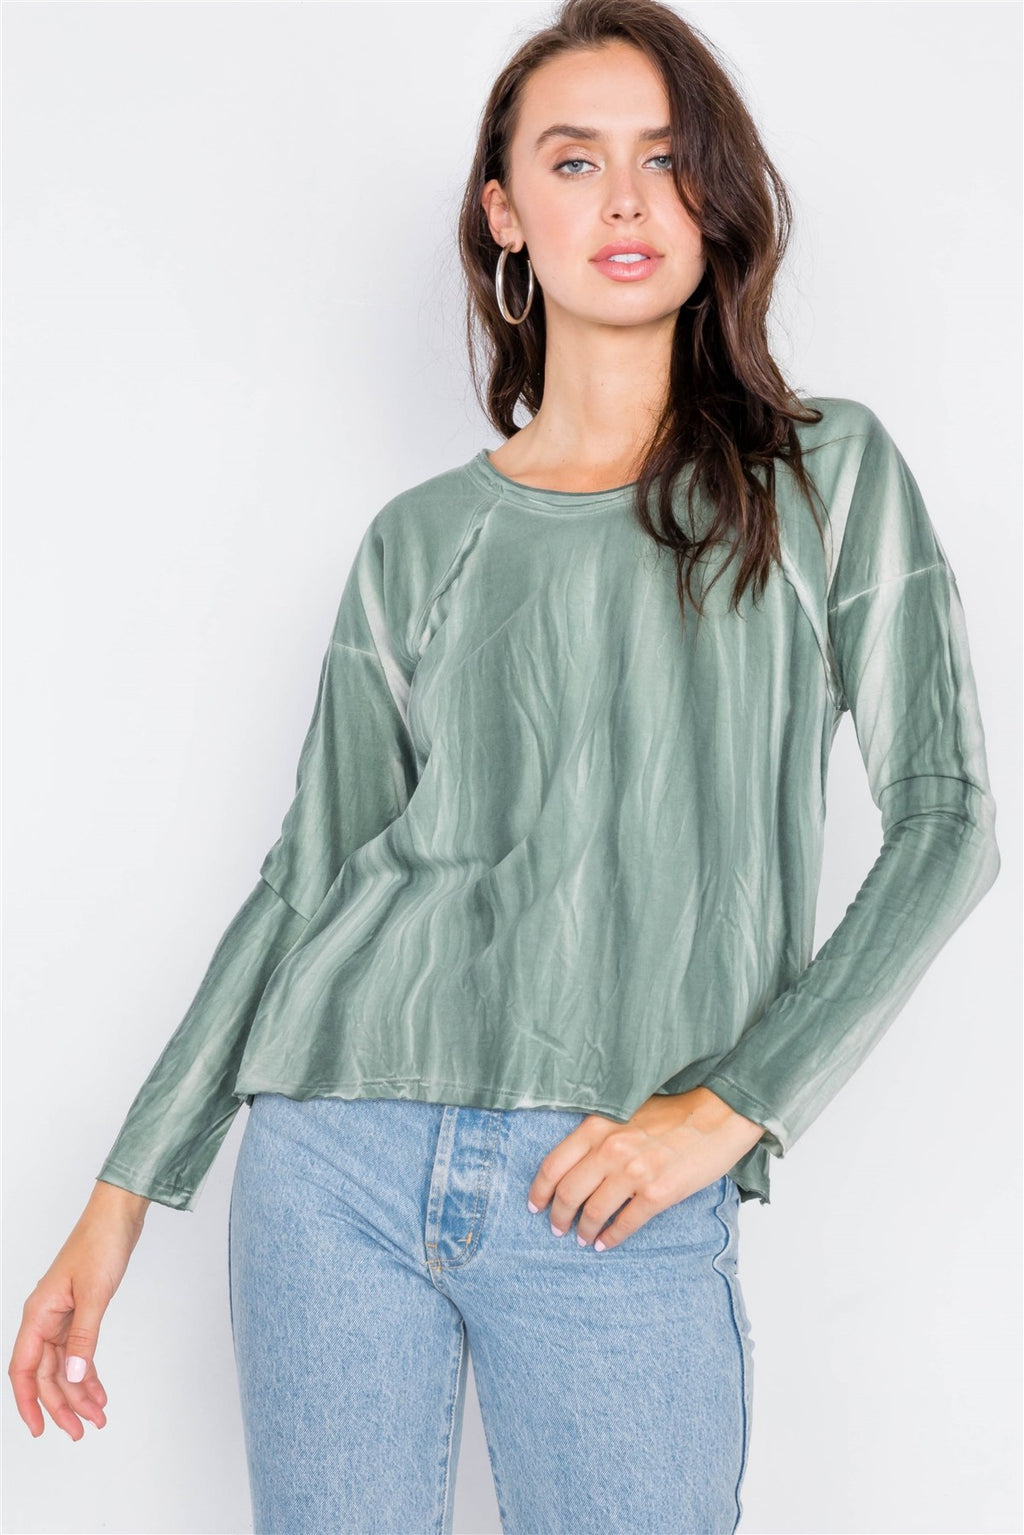 Tie-dye Print High-low Long Sleeve Top